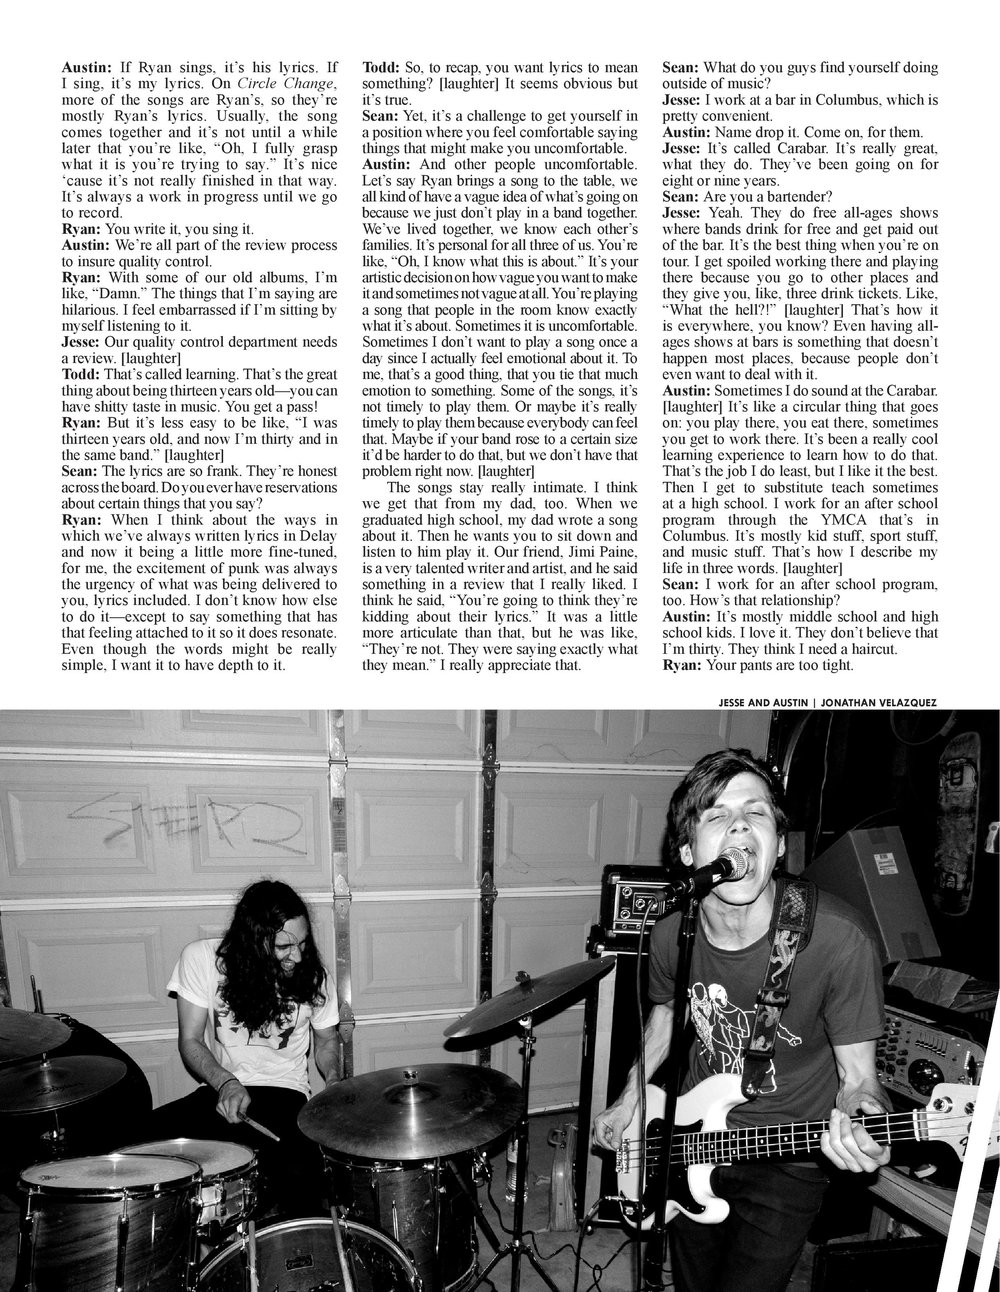 delay_interview-page-005.jpg